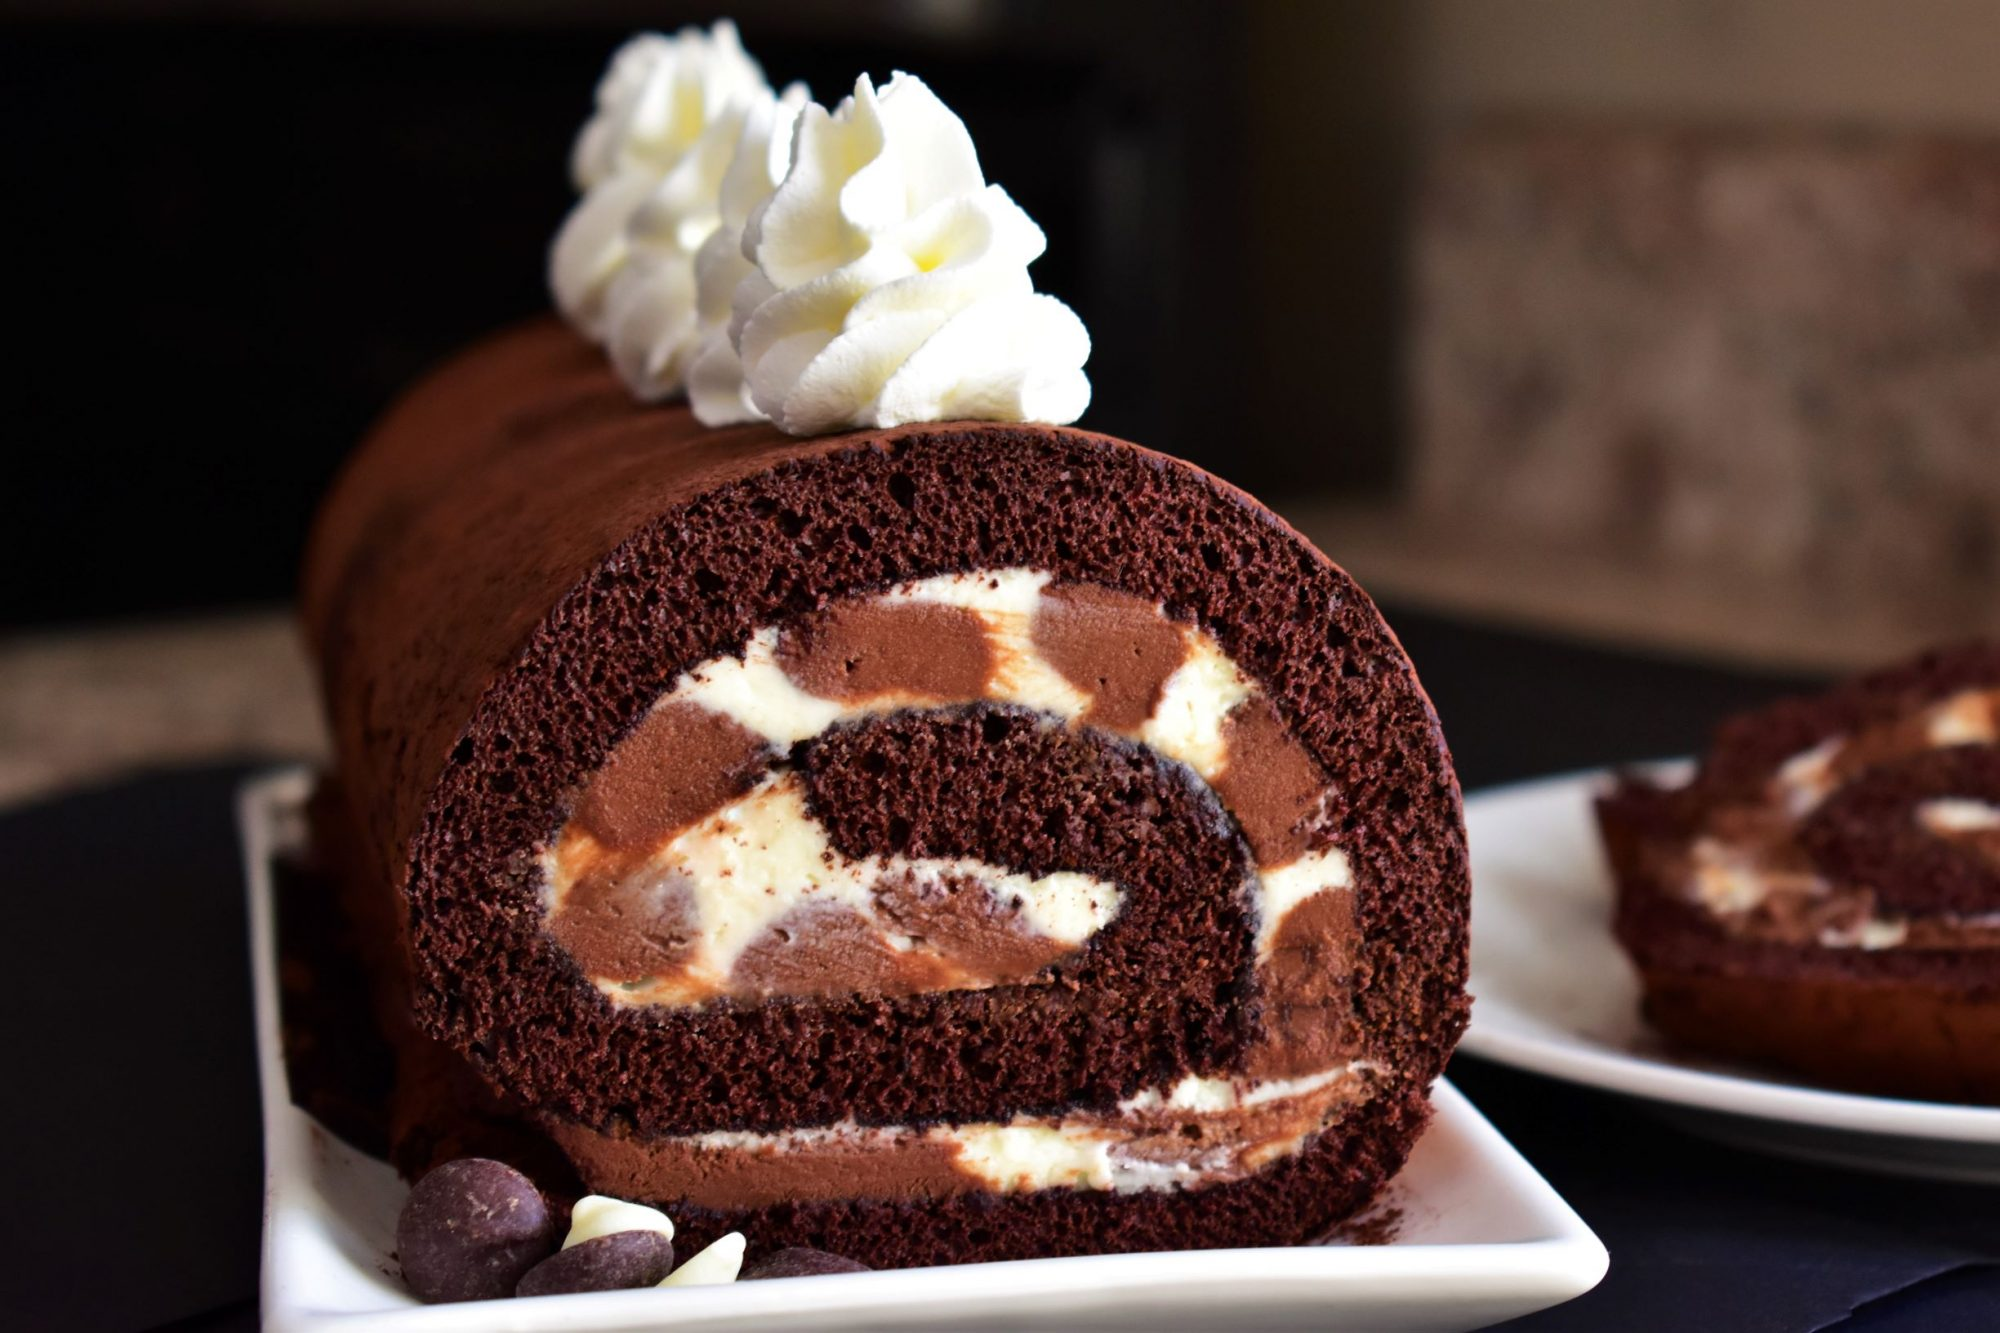 chocolate cake roll with chocolate and and white filling with whipped topping